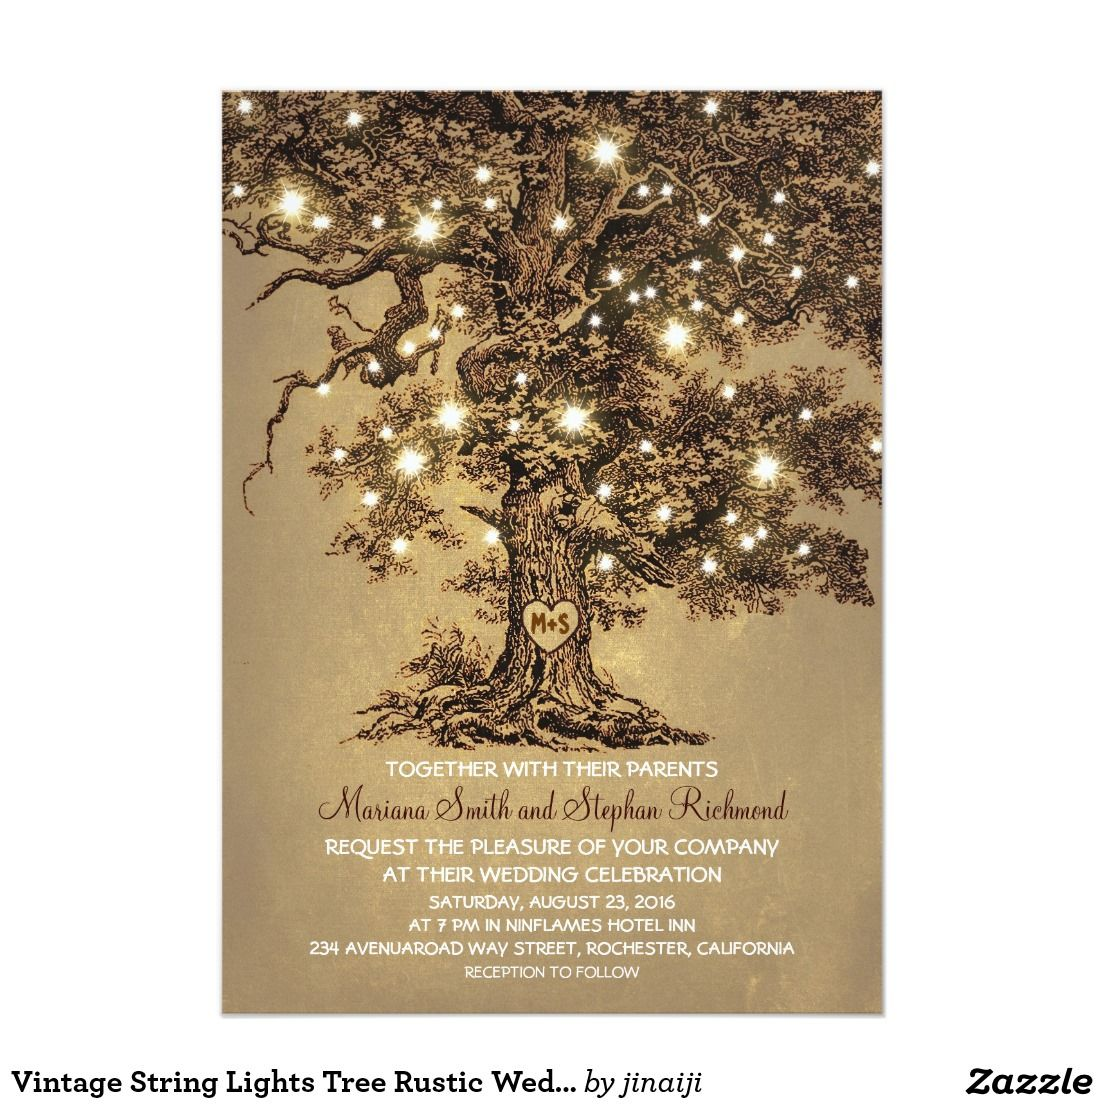 Vintage String Lights Tree Rustic Wedding Invites This Stunning - Rustic country wedding invitation templates